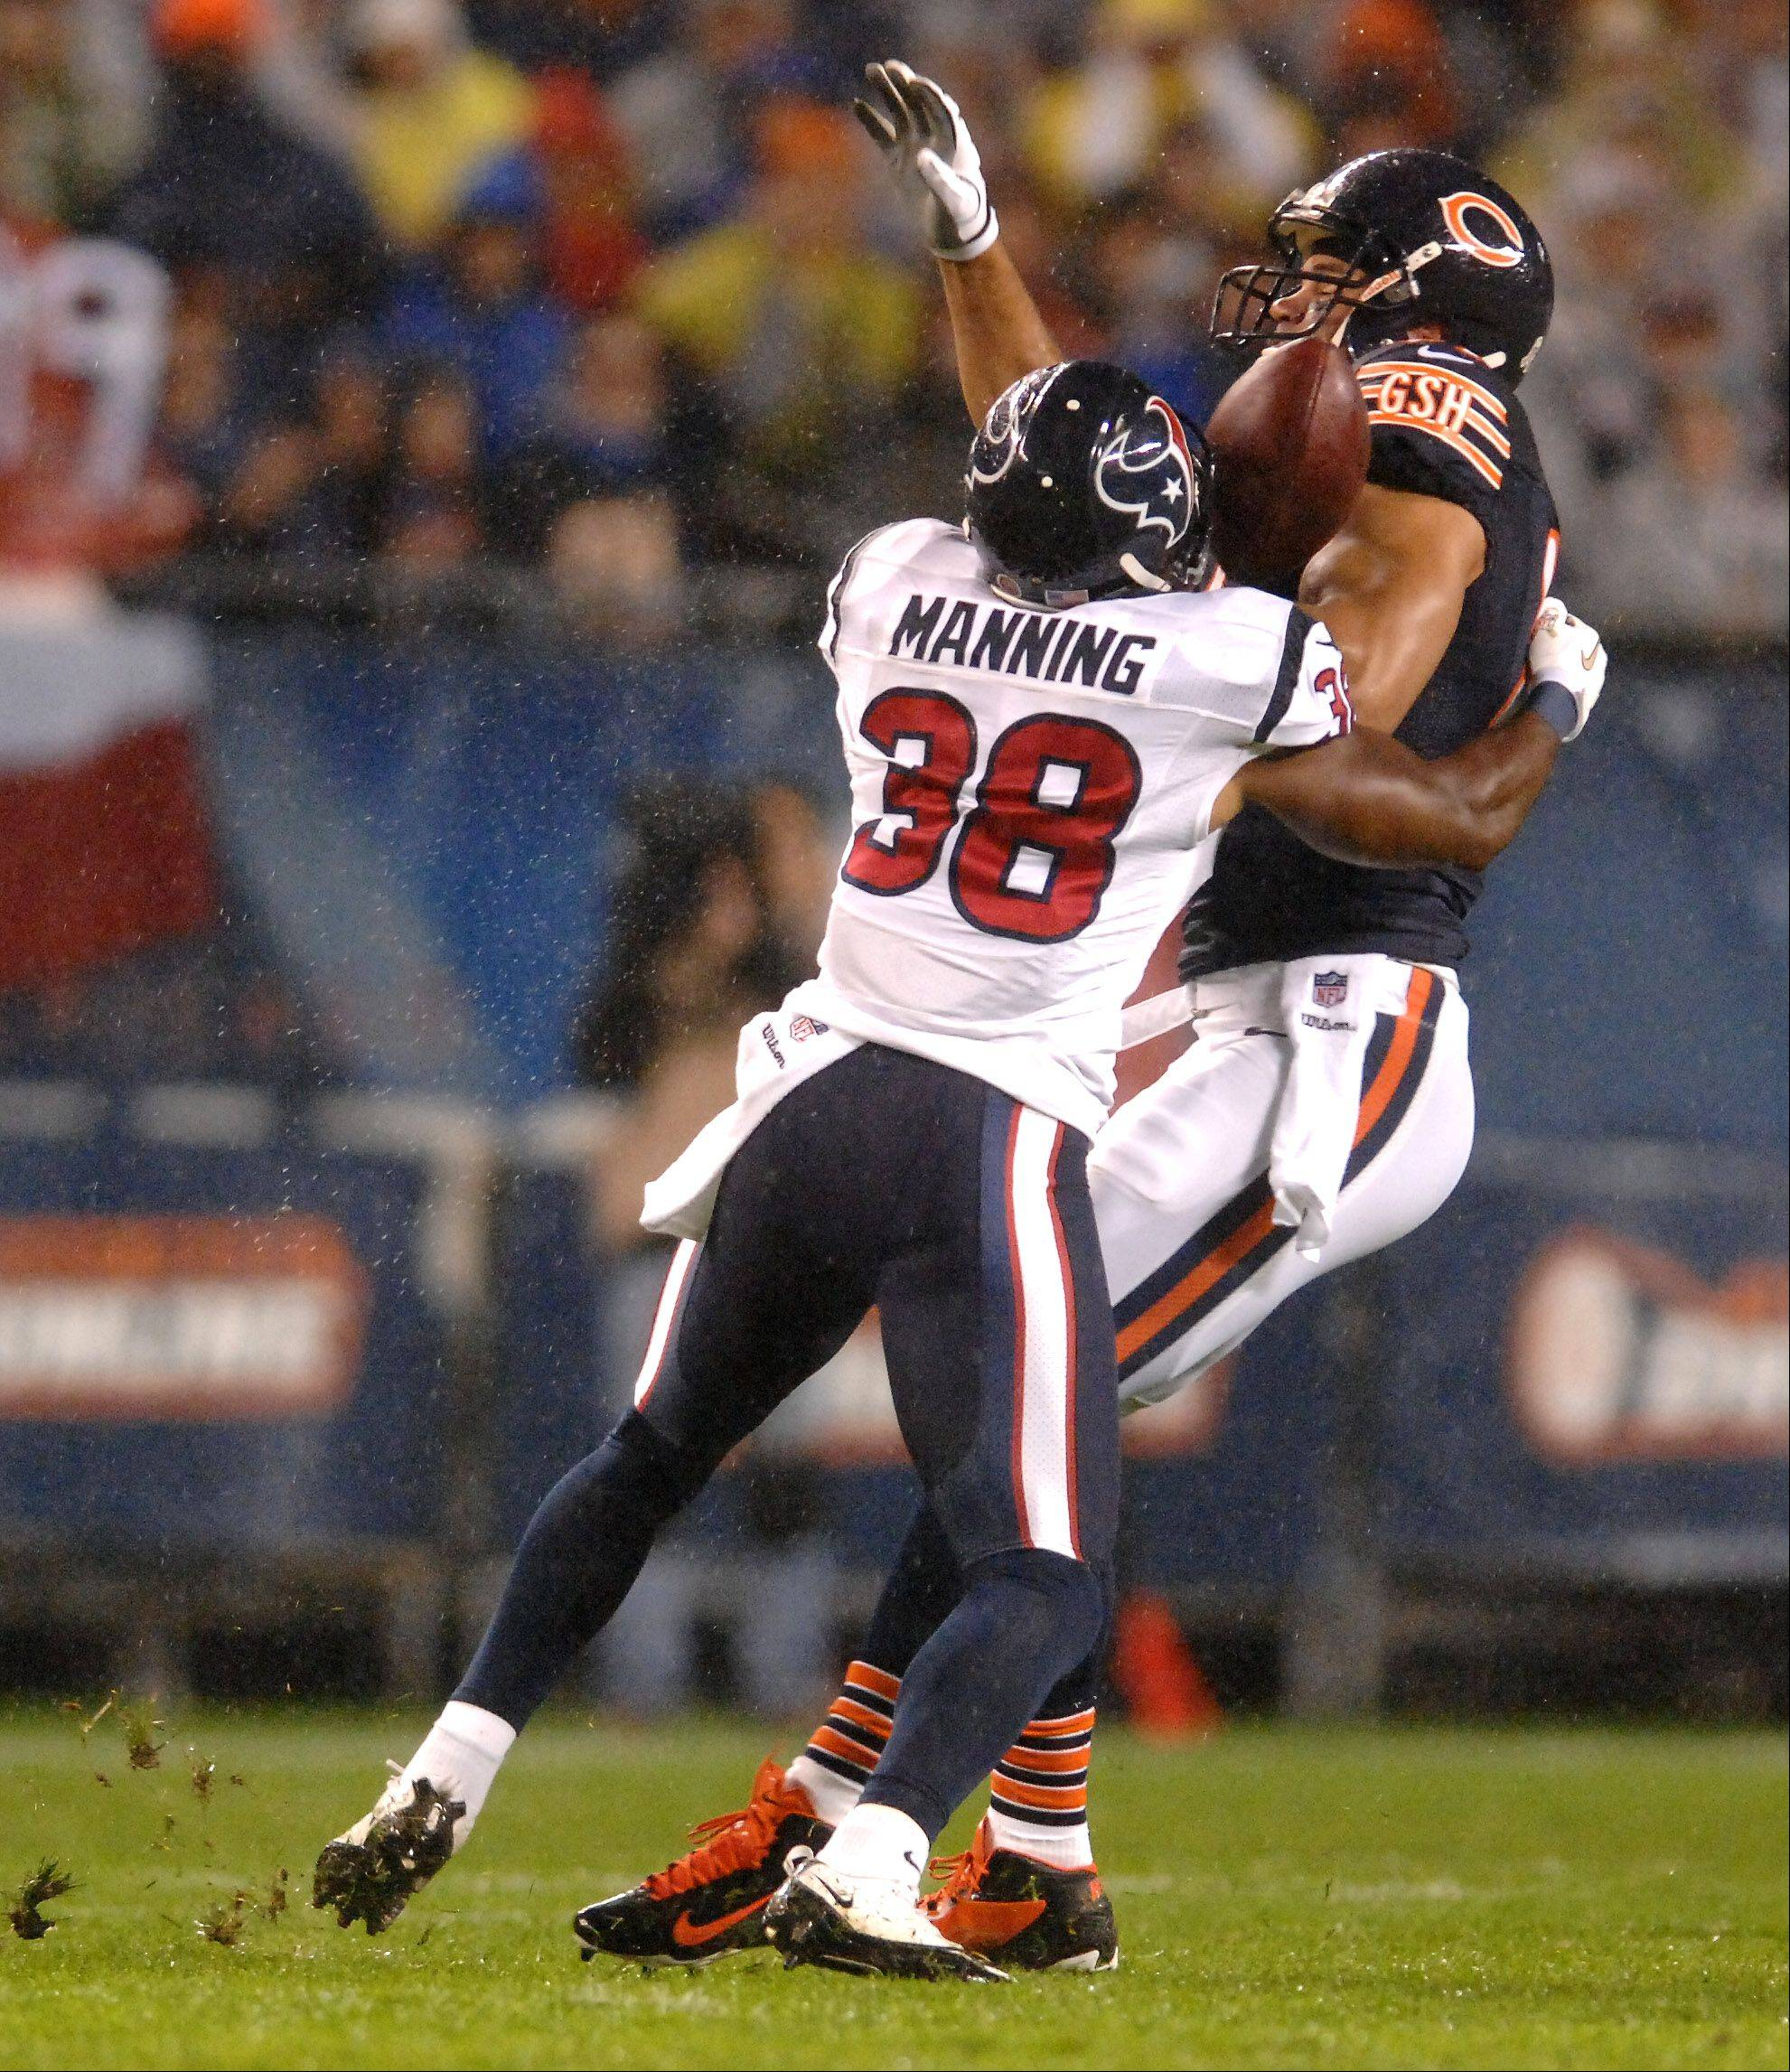 Former Bear Danieal Manning forces Chicago Bears tight end Kellen Davis (87) to fumble after a catch.